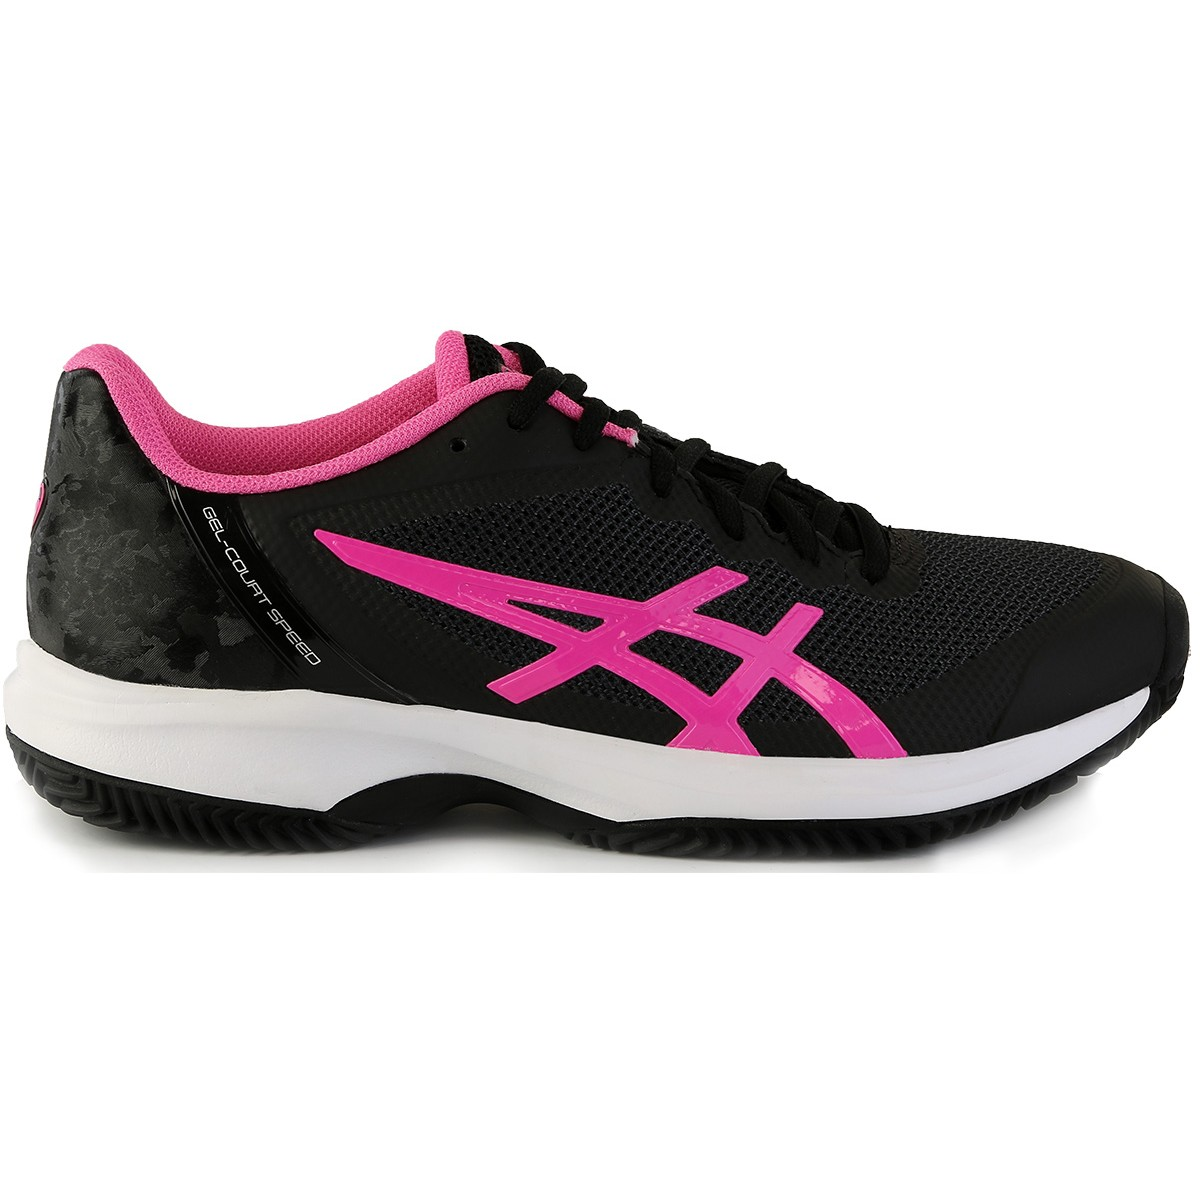 SCARPE DONNA ASICS GEL COURT SPEED 7 TERRA BATTUTA